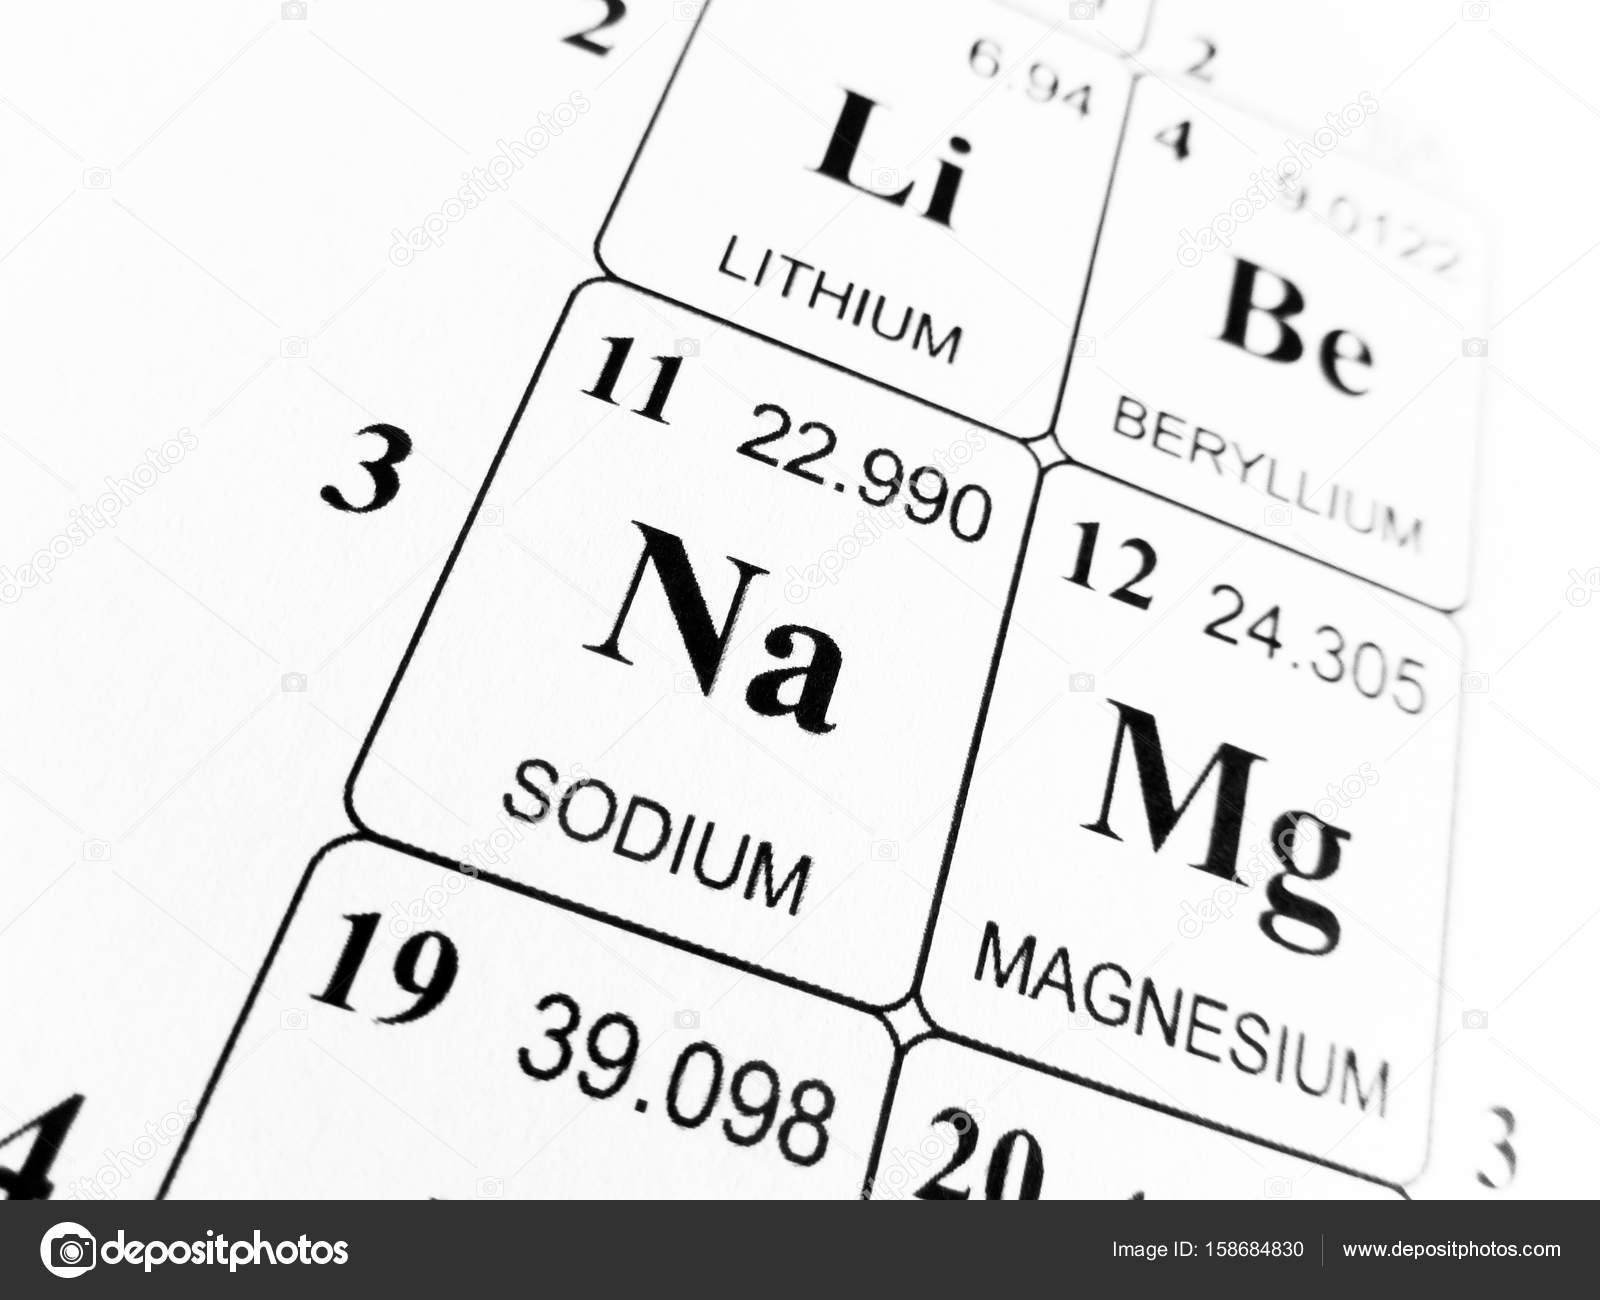 Sodium on the periodic table of the elements stock photo sodium on the periodic table of the elements stock photo urtaz Choice Image